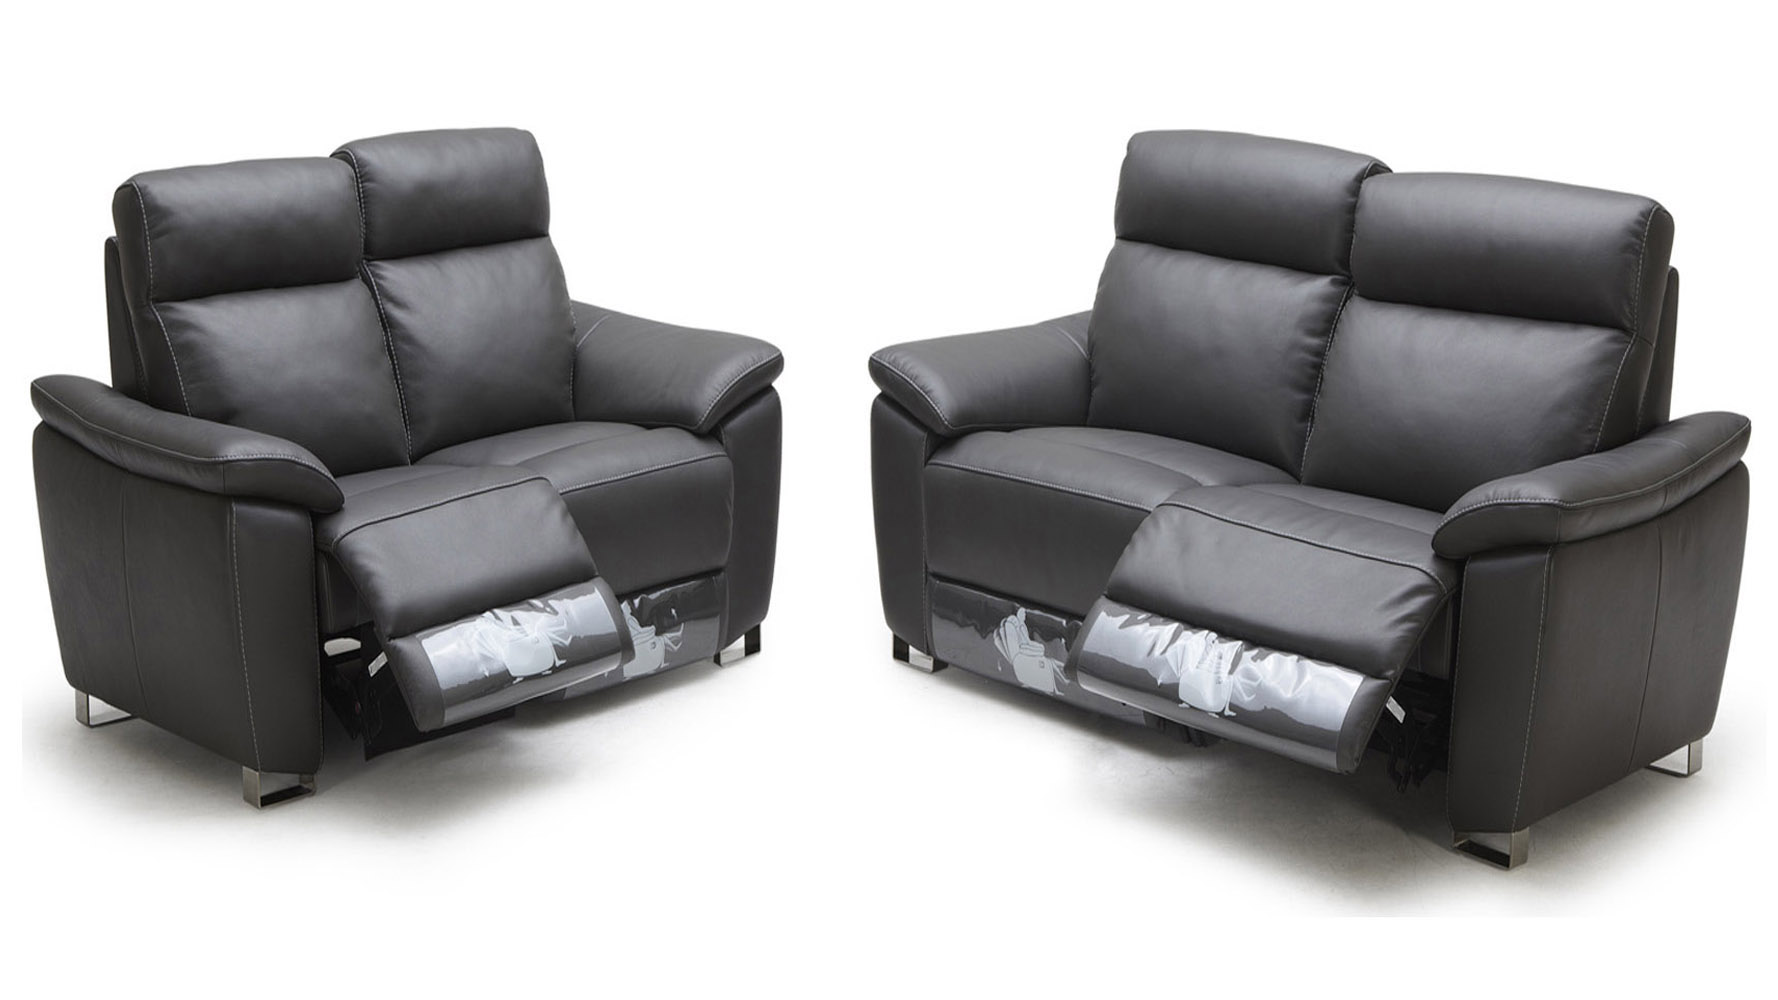 Grey Legian Reclining Leather Sofa Set With Loveseat And Chair | Zuri  Furniture